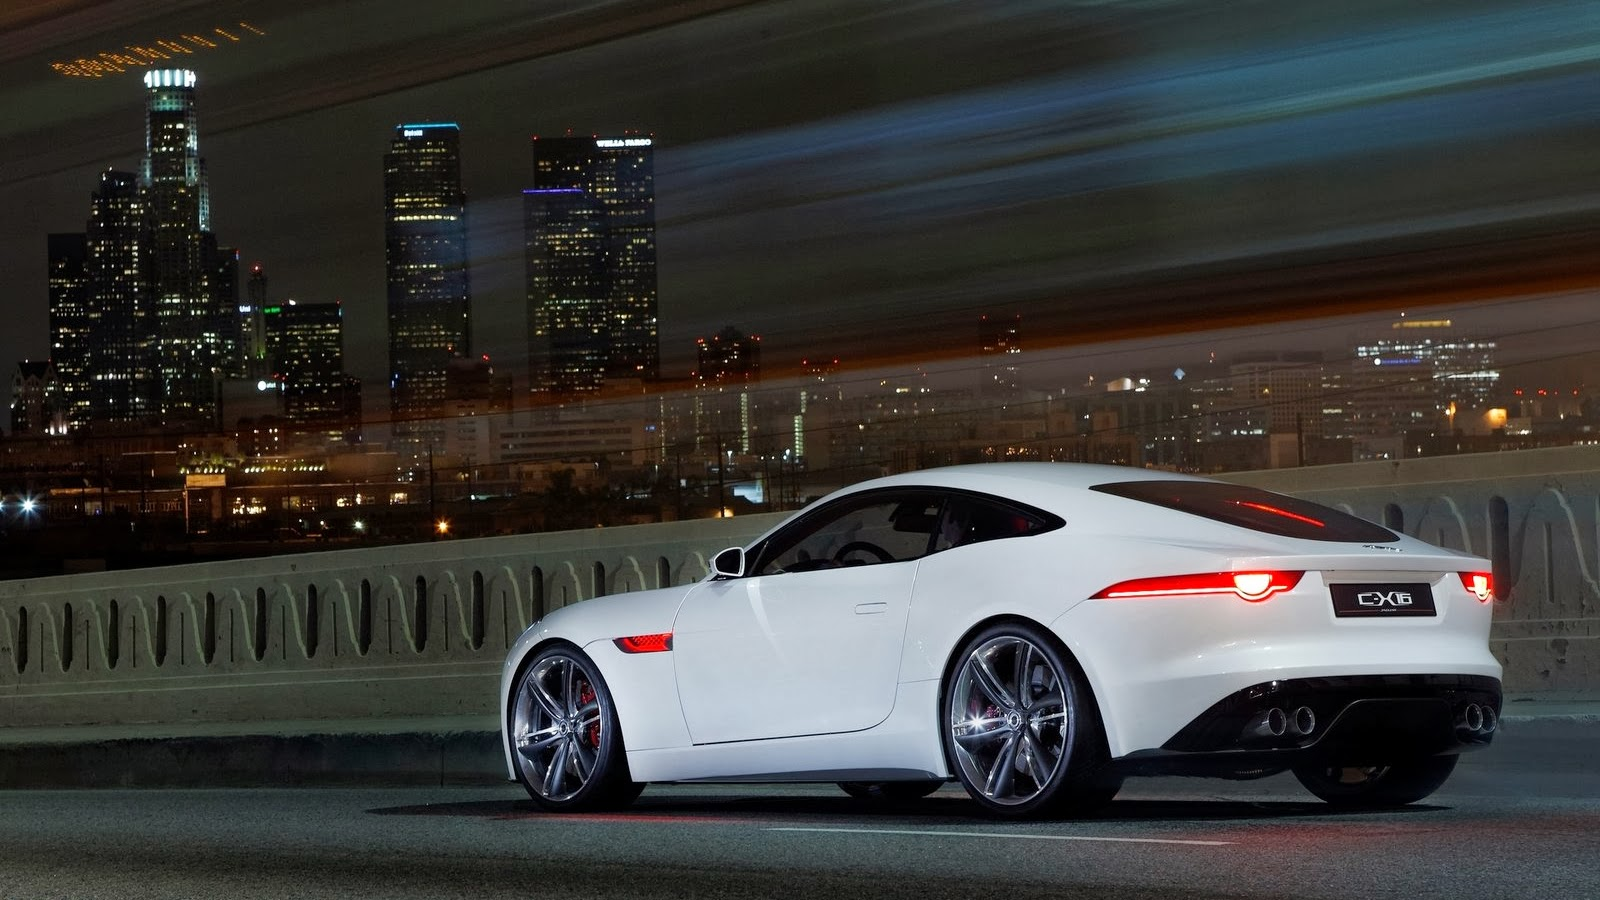 jaguar launched latest car f type coupe our smart info. Black Bedroom Furniture Sets. Home Design Ideas